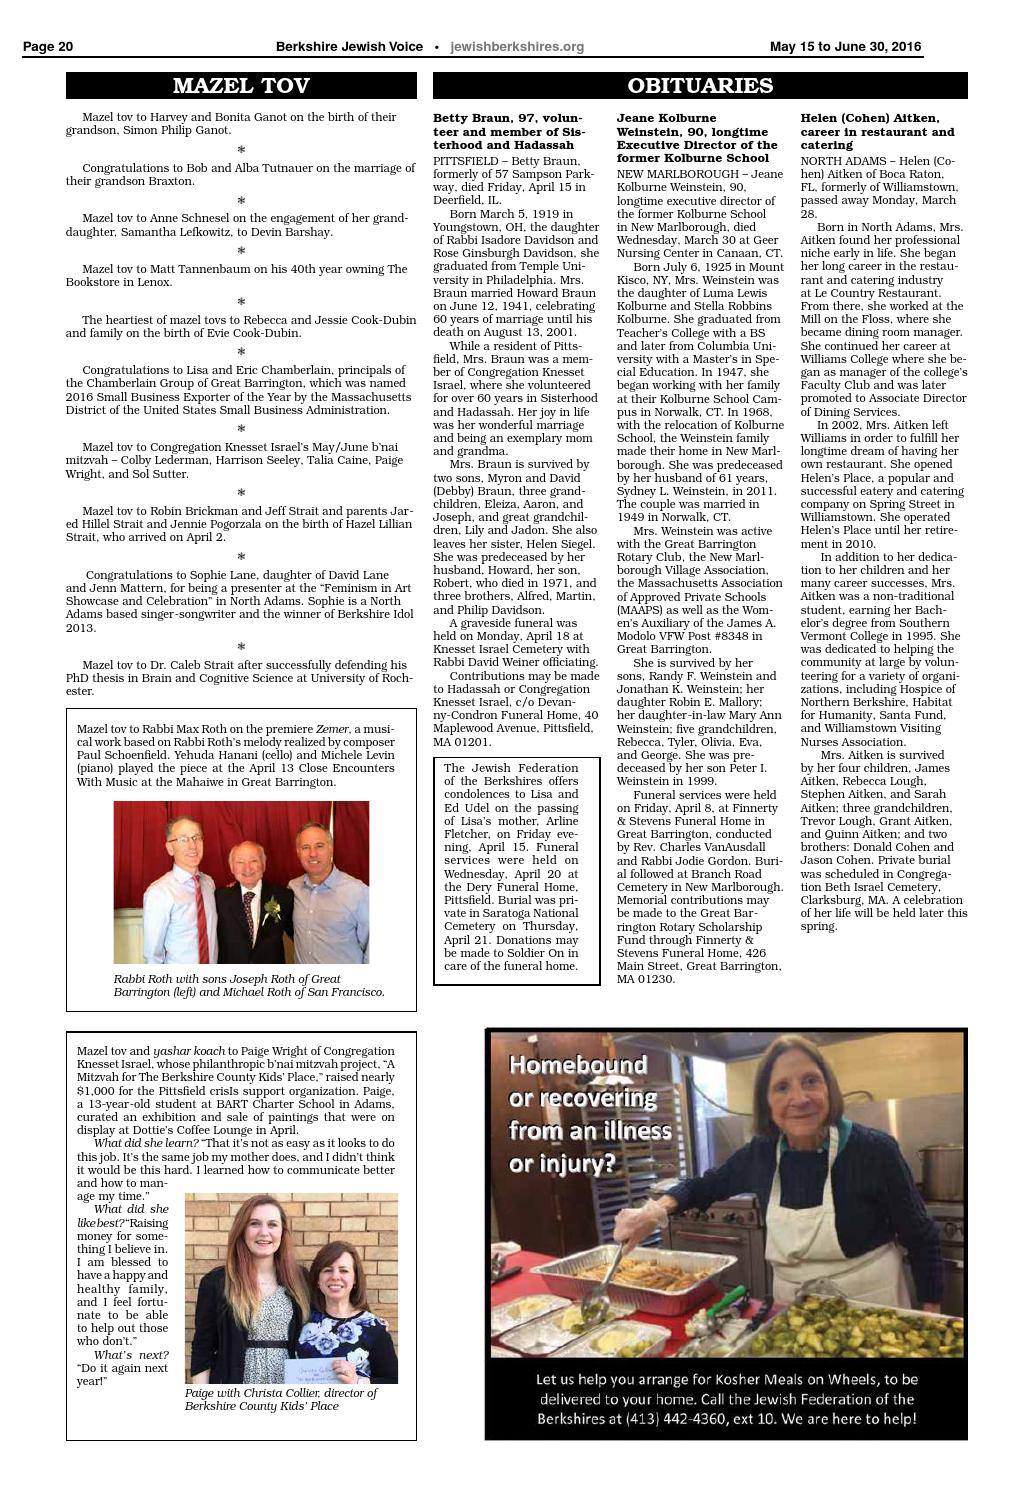 Berkshire Jewish Voice May 15 2015 By Jewish Federation Of The